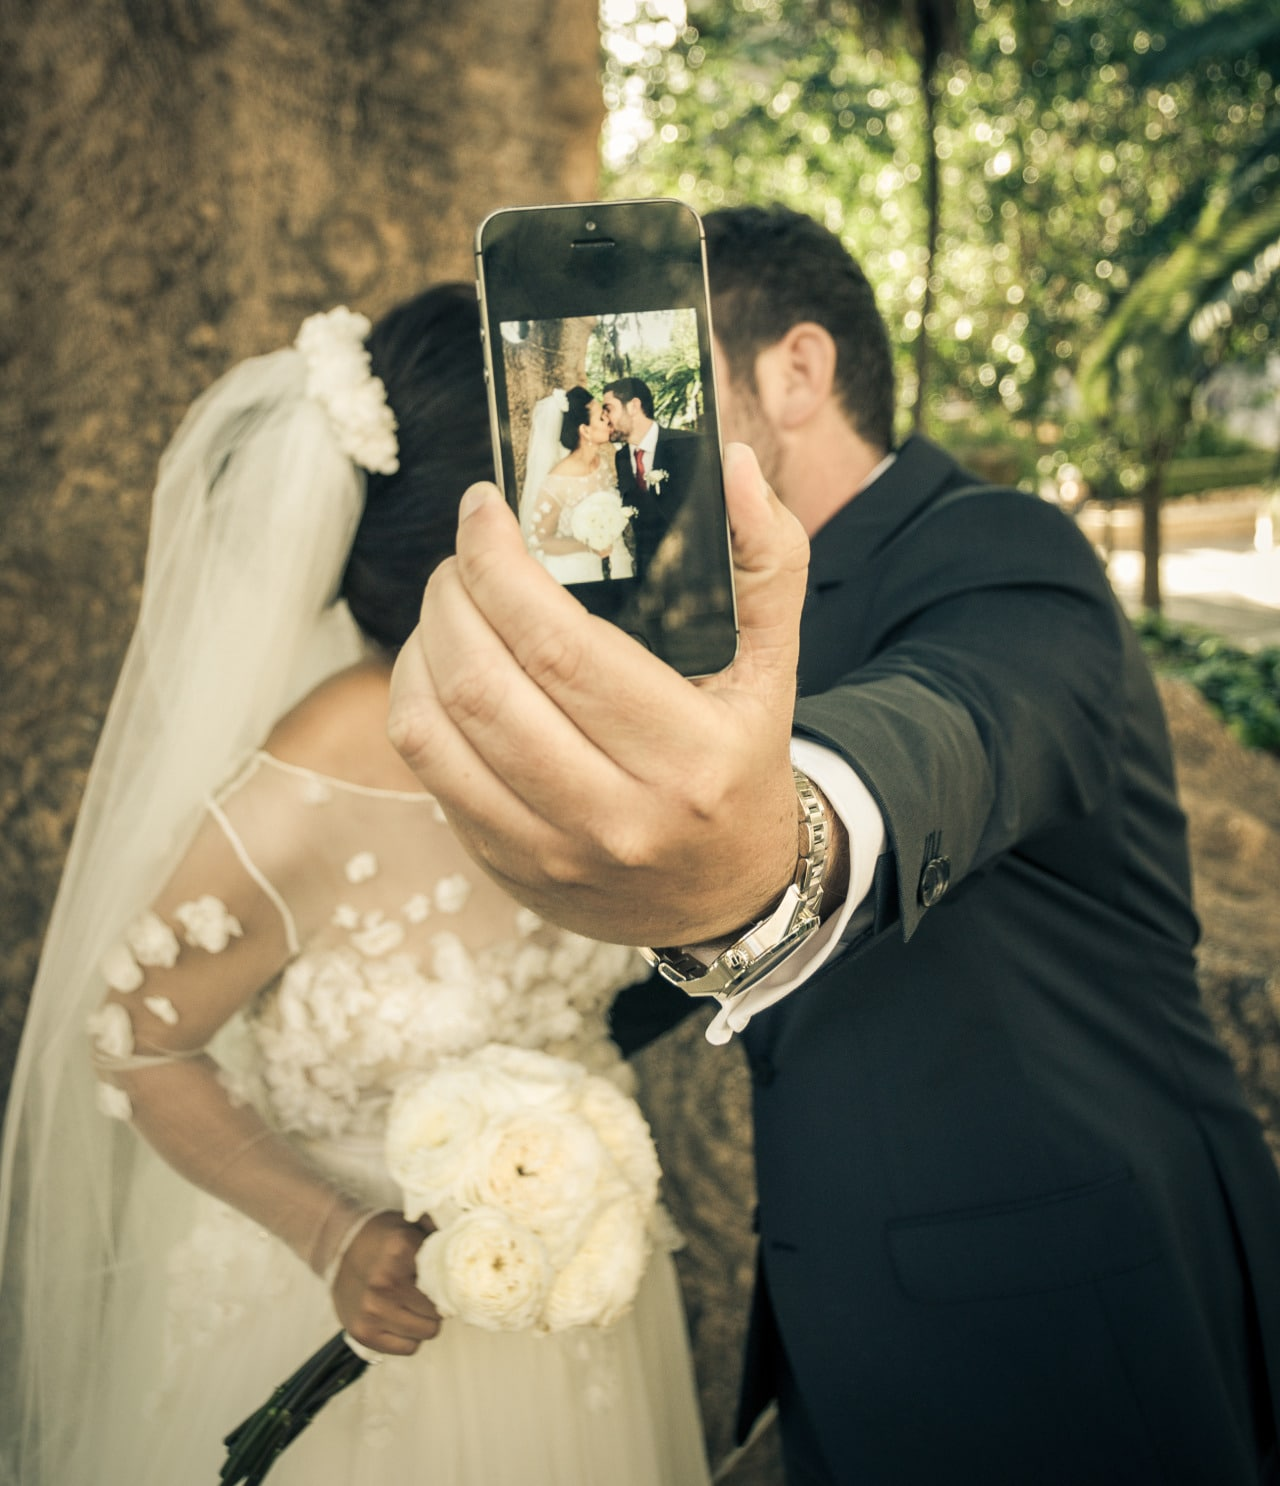 Wedding photographers Mallorca iphone